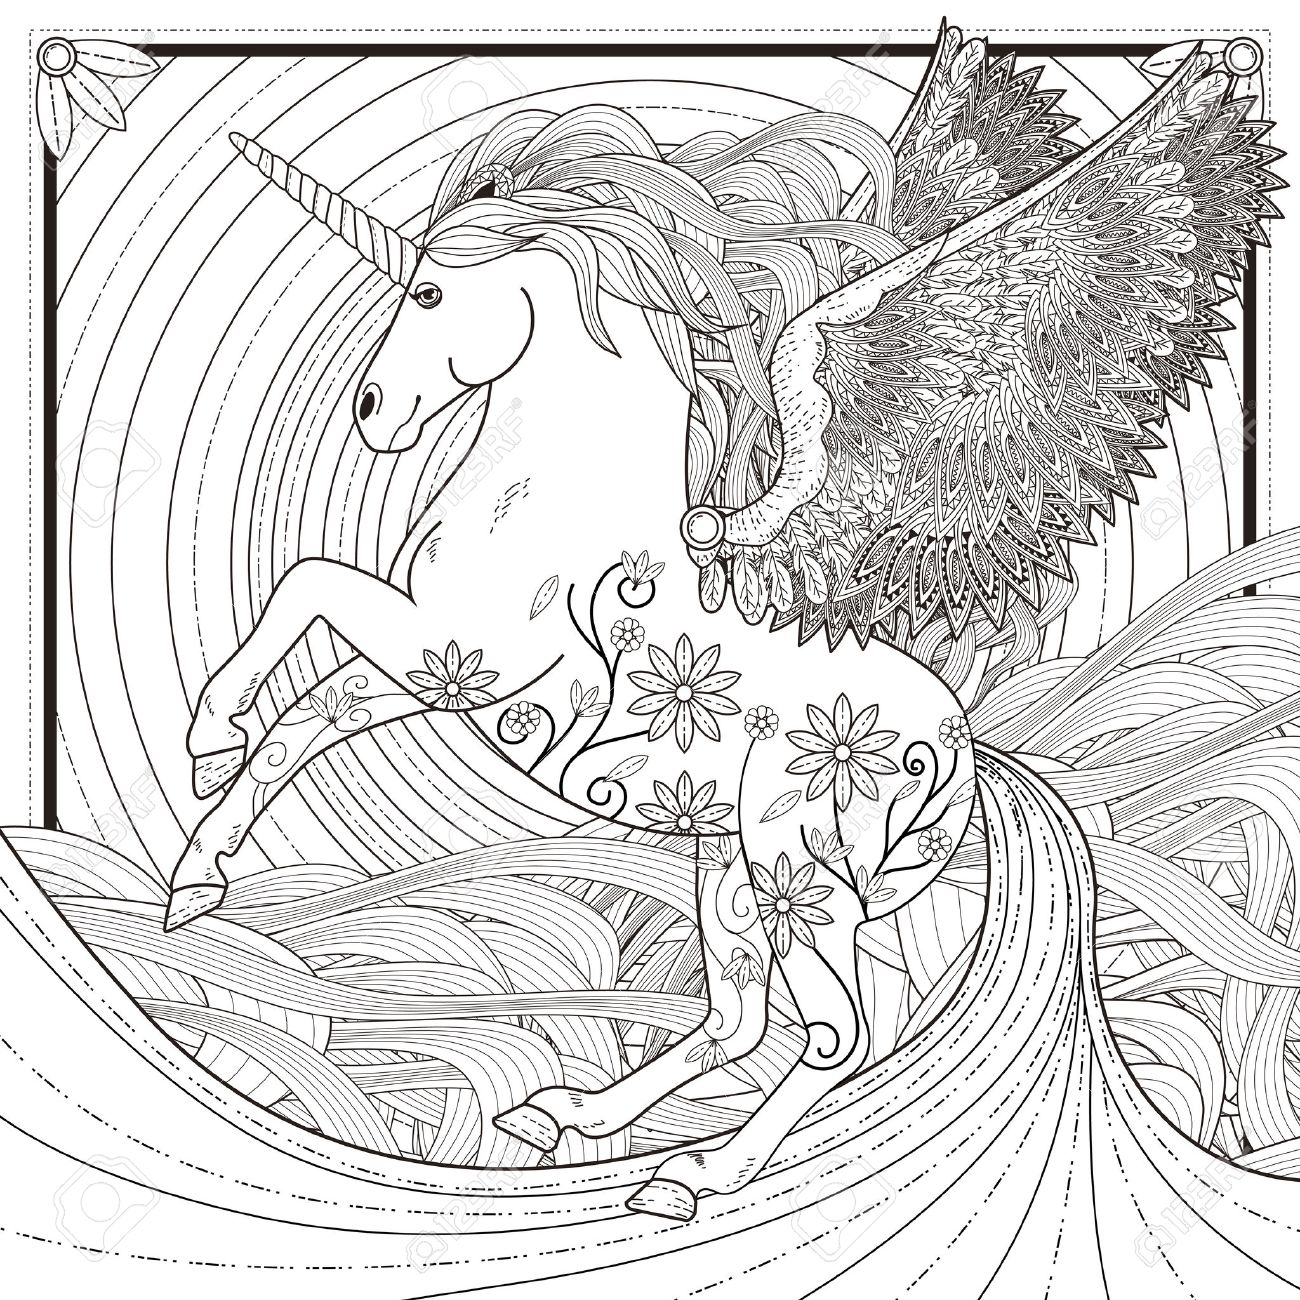 - Fantastic Unicorn Coloring Page In Exquisite Style Royalty Free